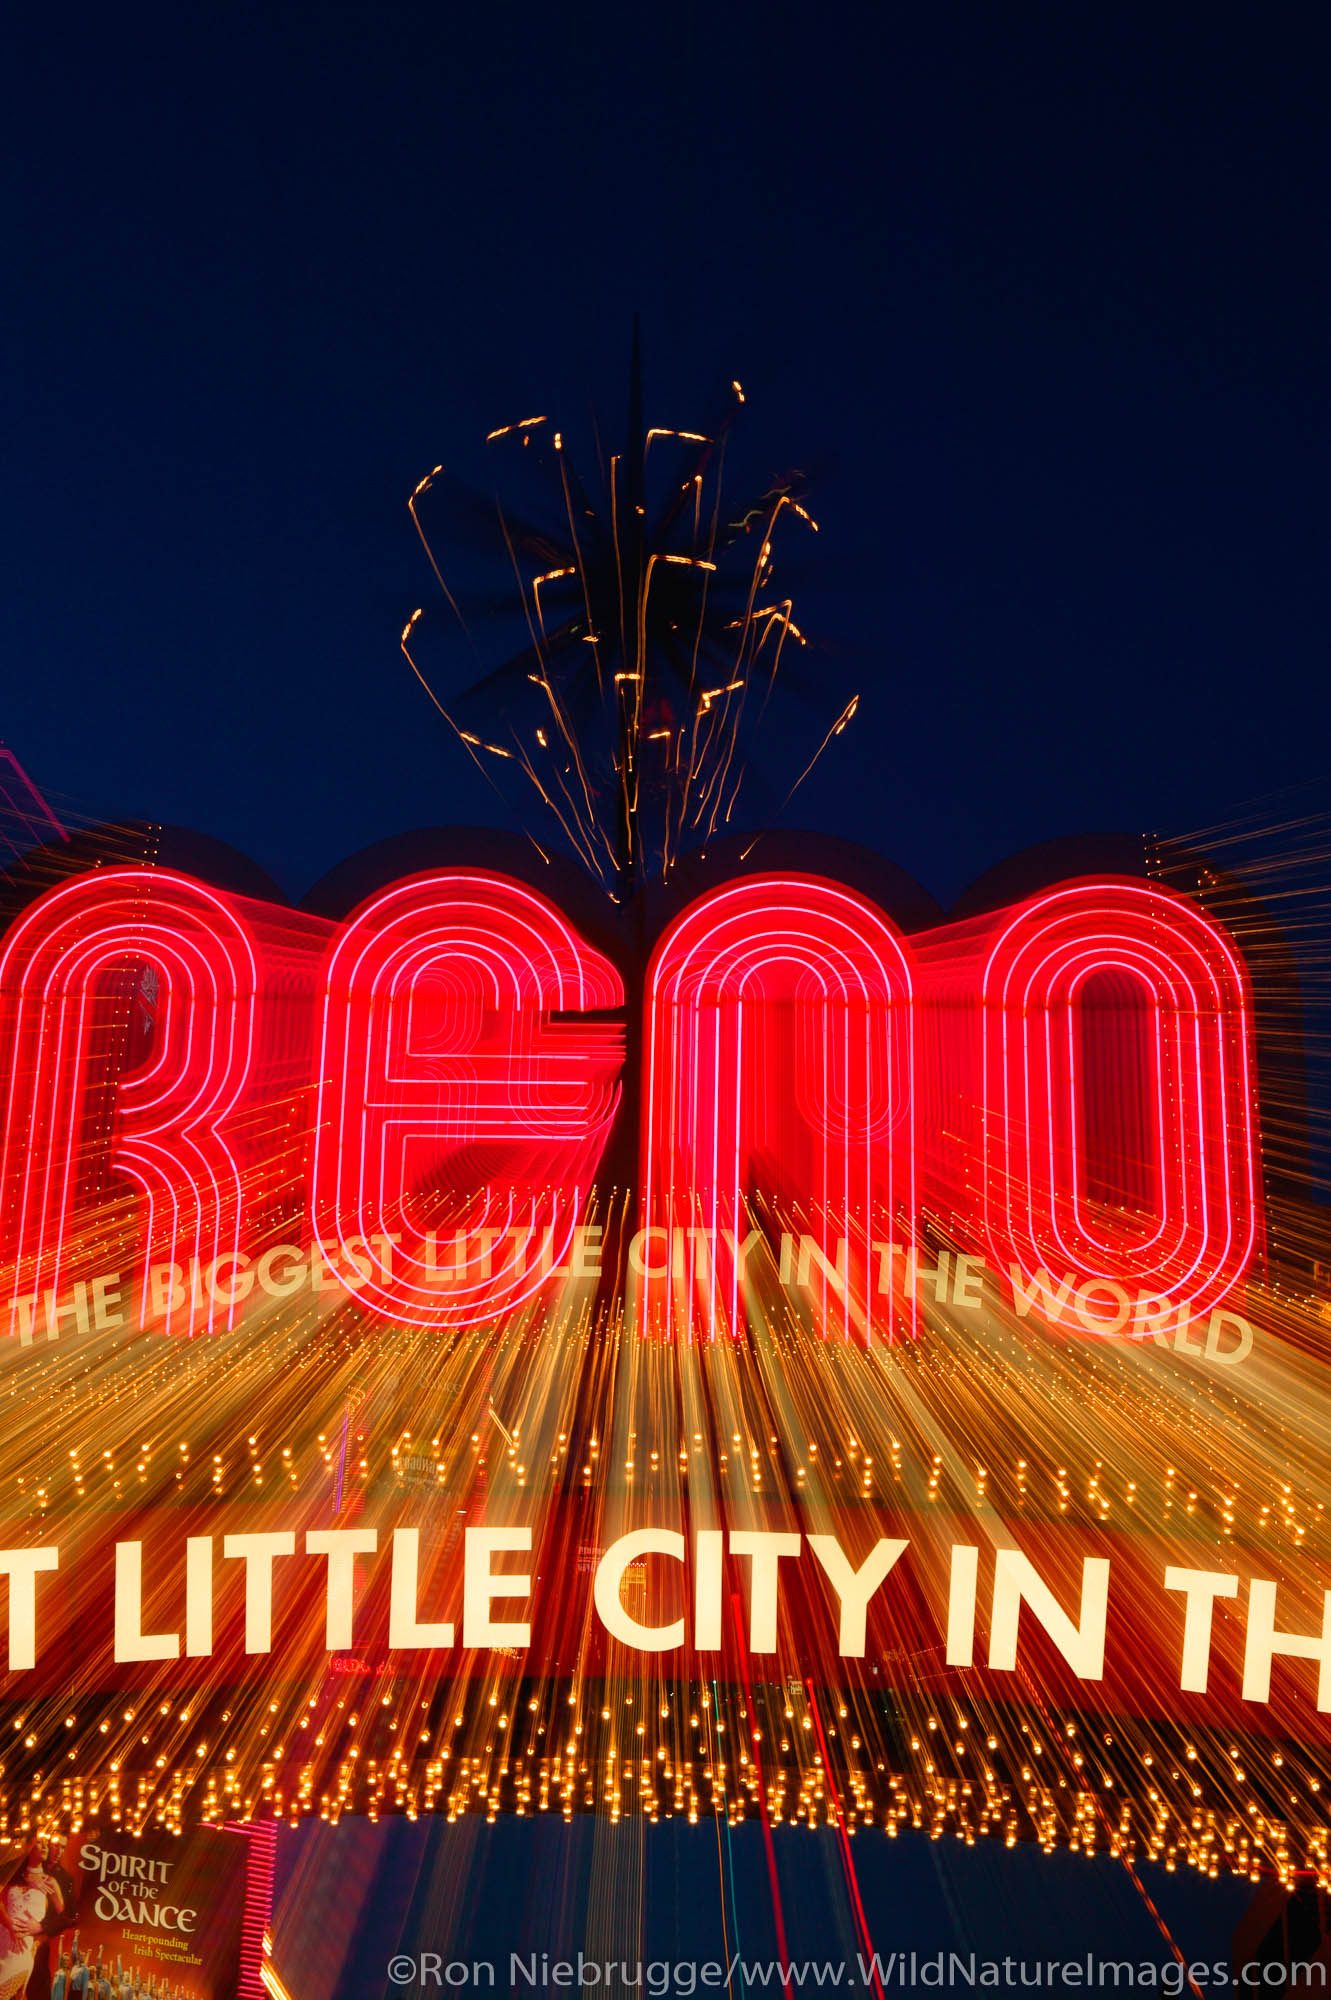 """The famous """"Biggest little city in the world"""" sign"""" to Reno, Nevada."""